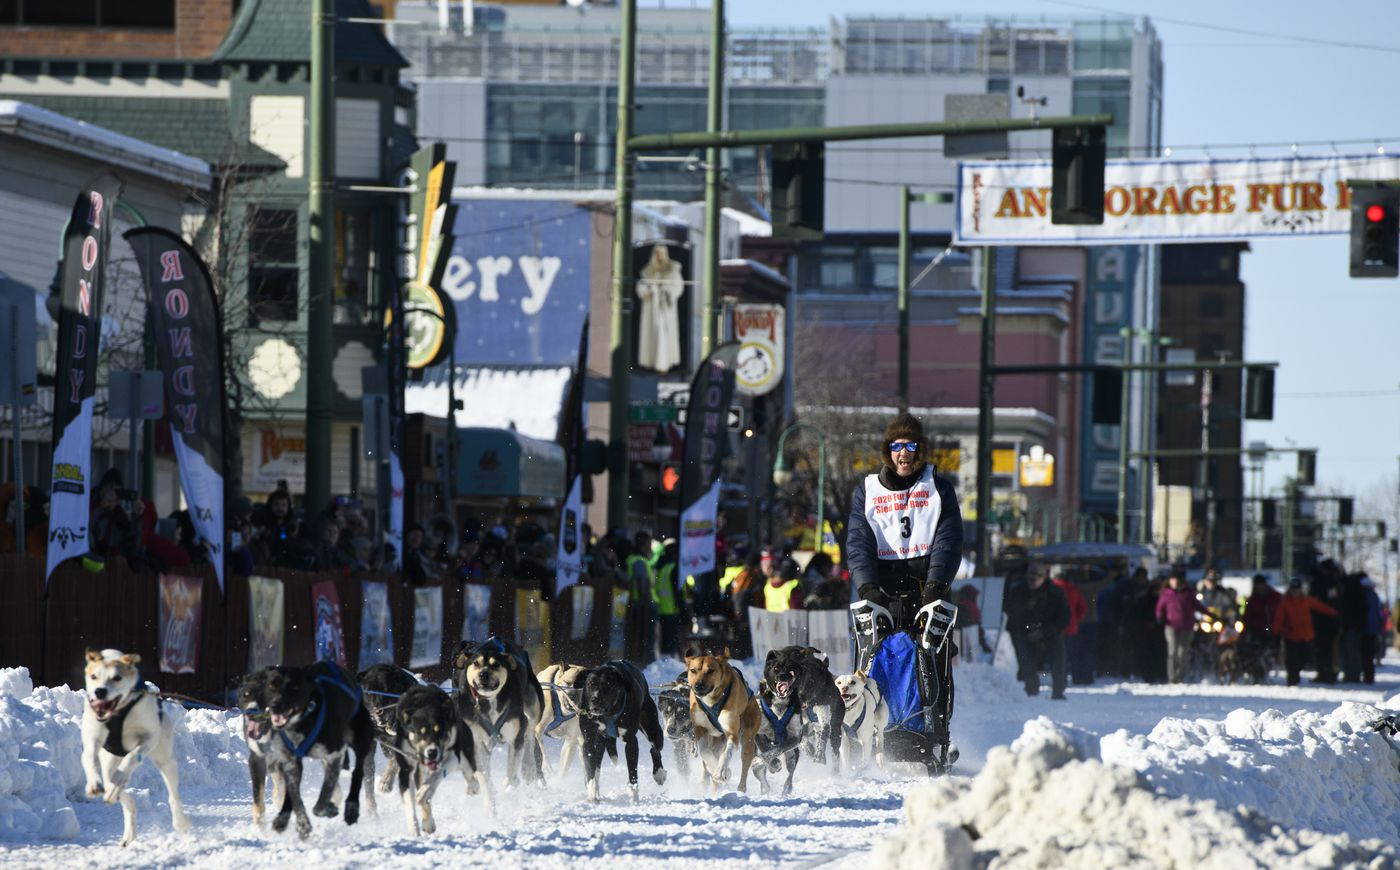 Armin Johnson, of Whitehorse, Yukon, leaves the starting line on 4th Avenue. (Marc Lester / ADN)